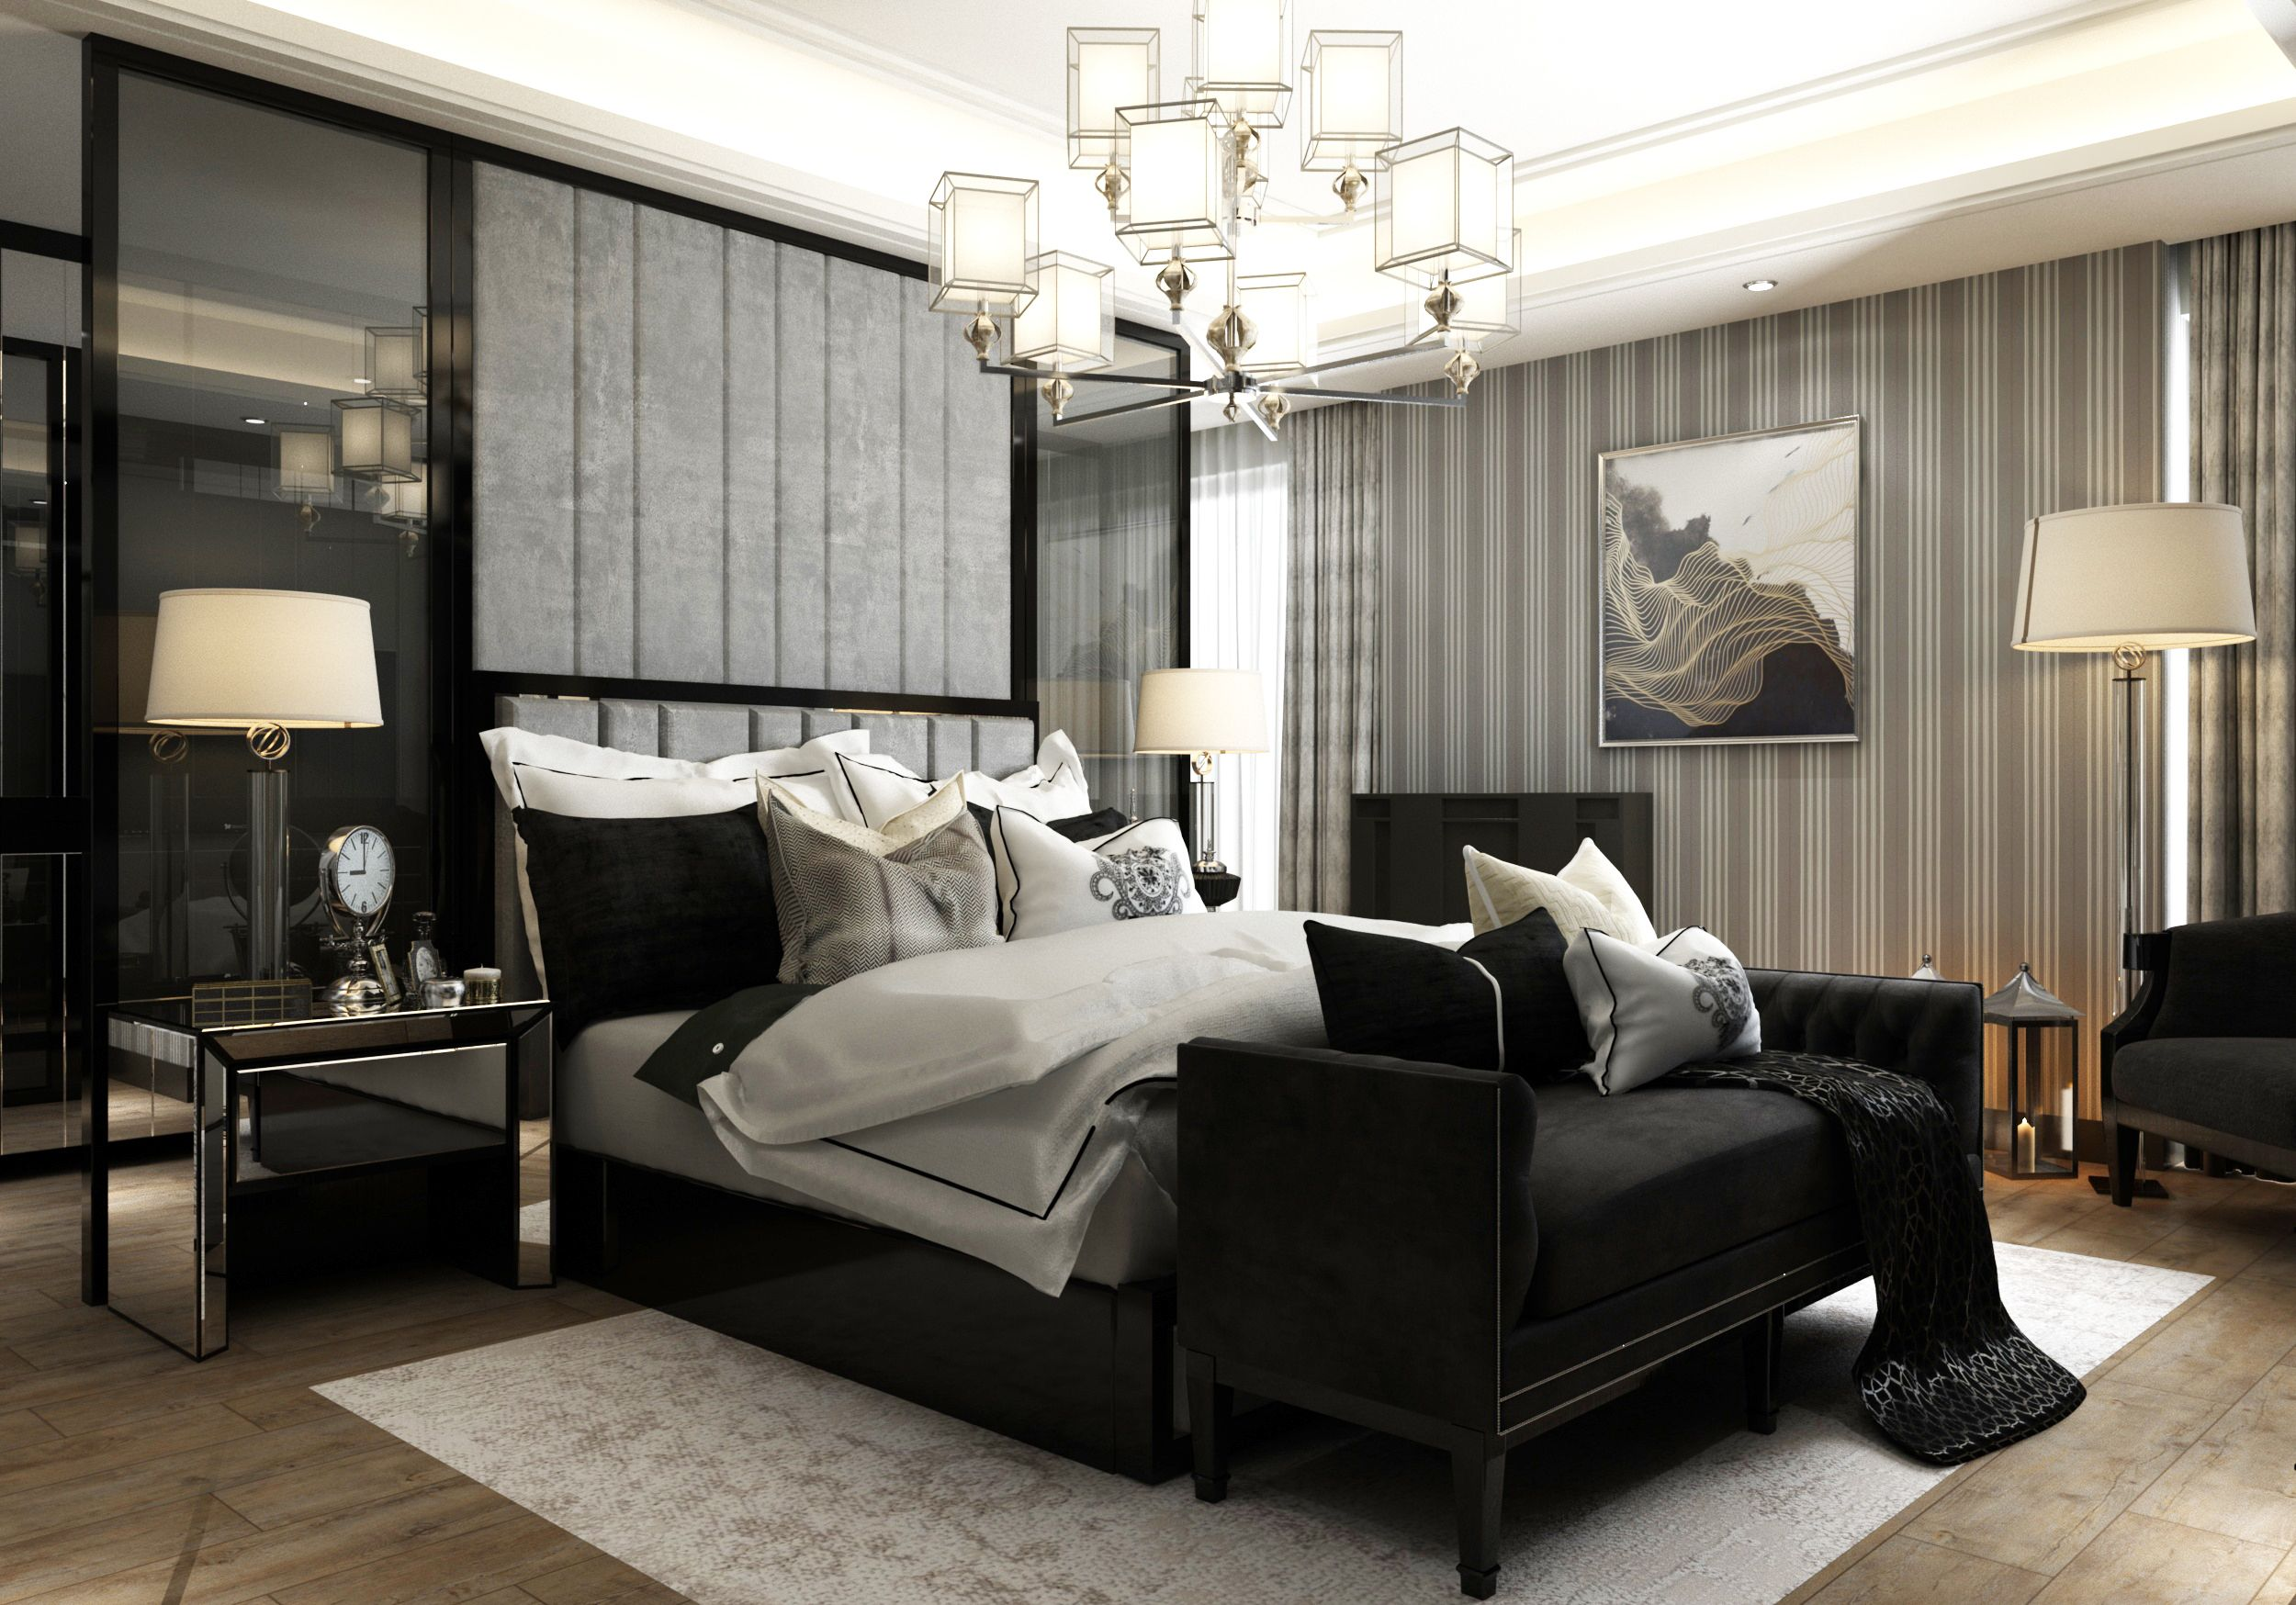 Black & Grey Master Bedroom Interior And Furniture Design